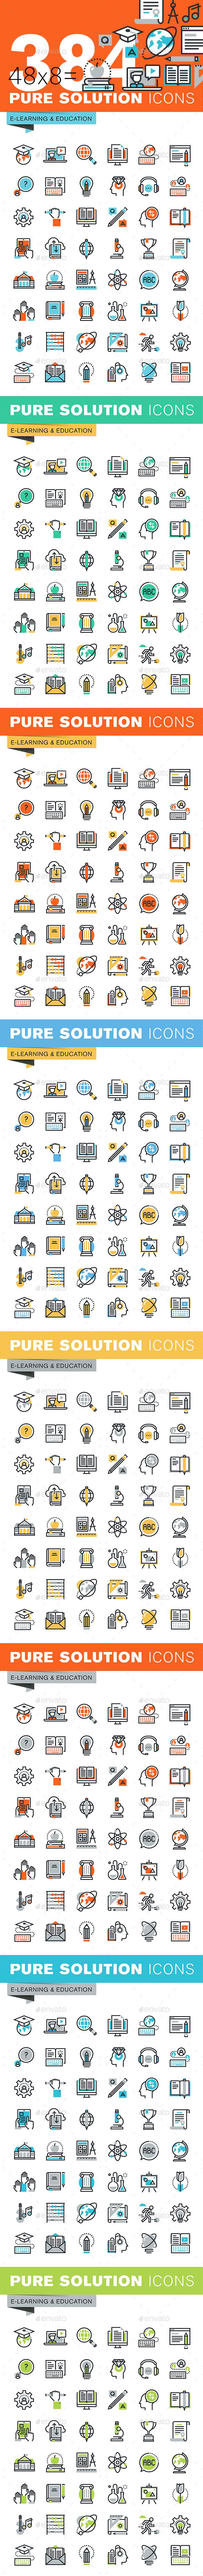 Set of Thin Line Flat Design Icons of Education. Download here: http://graphicriver.net/item/set-of-thin-line-flat-design-icons-of-education/14788429?ref=ksioks